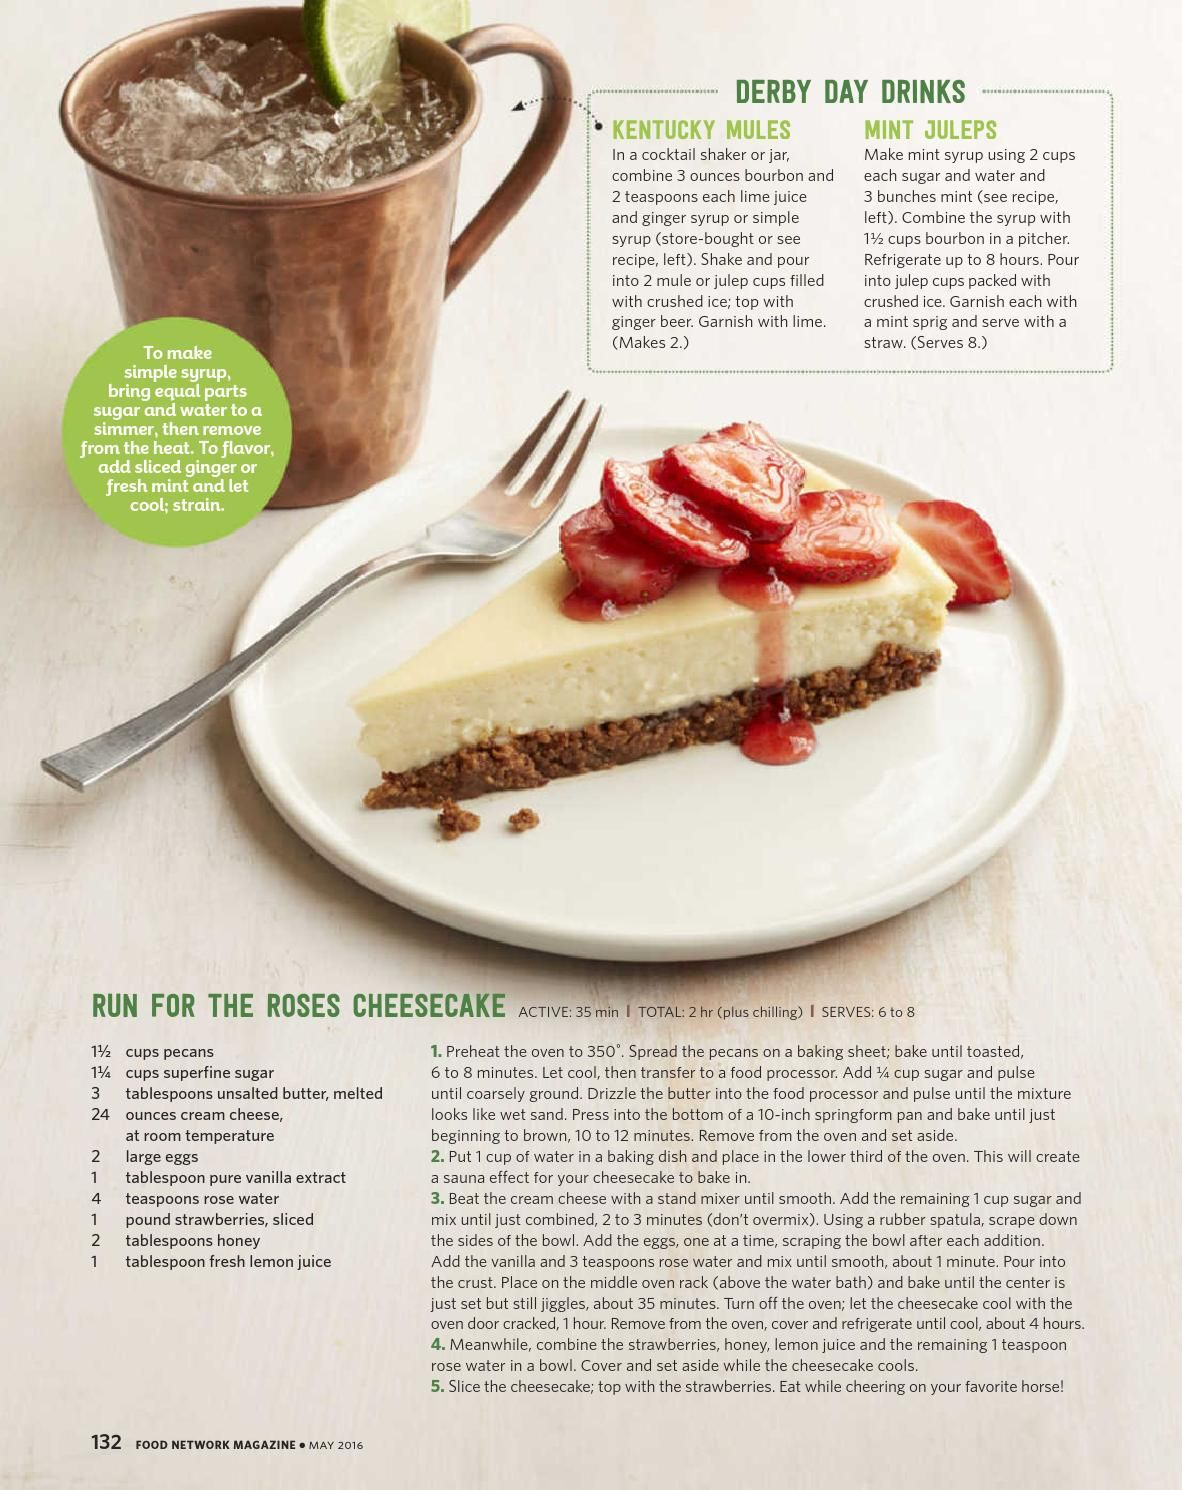 Food network magazine may 2016 recipe cards 500 calories and food network magazine may 2016 by iqonic issuu 500 caloriesrecipe cardsafternoon forumfinder Choice Image